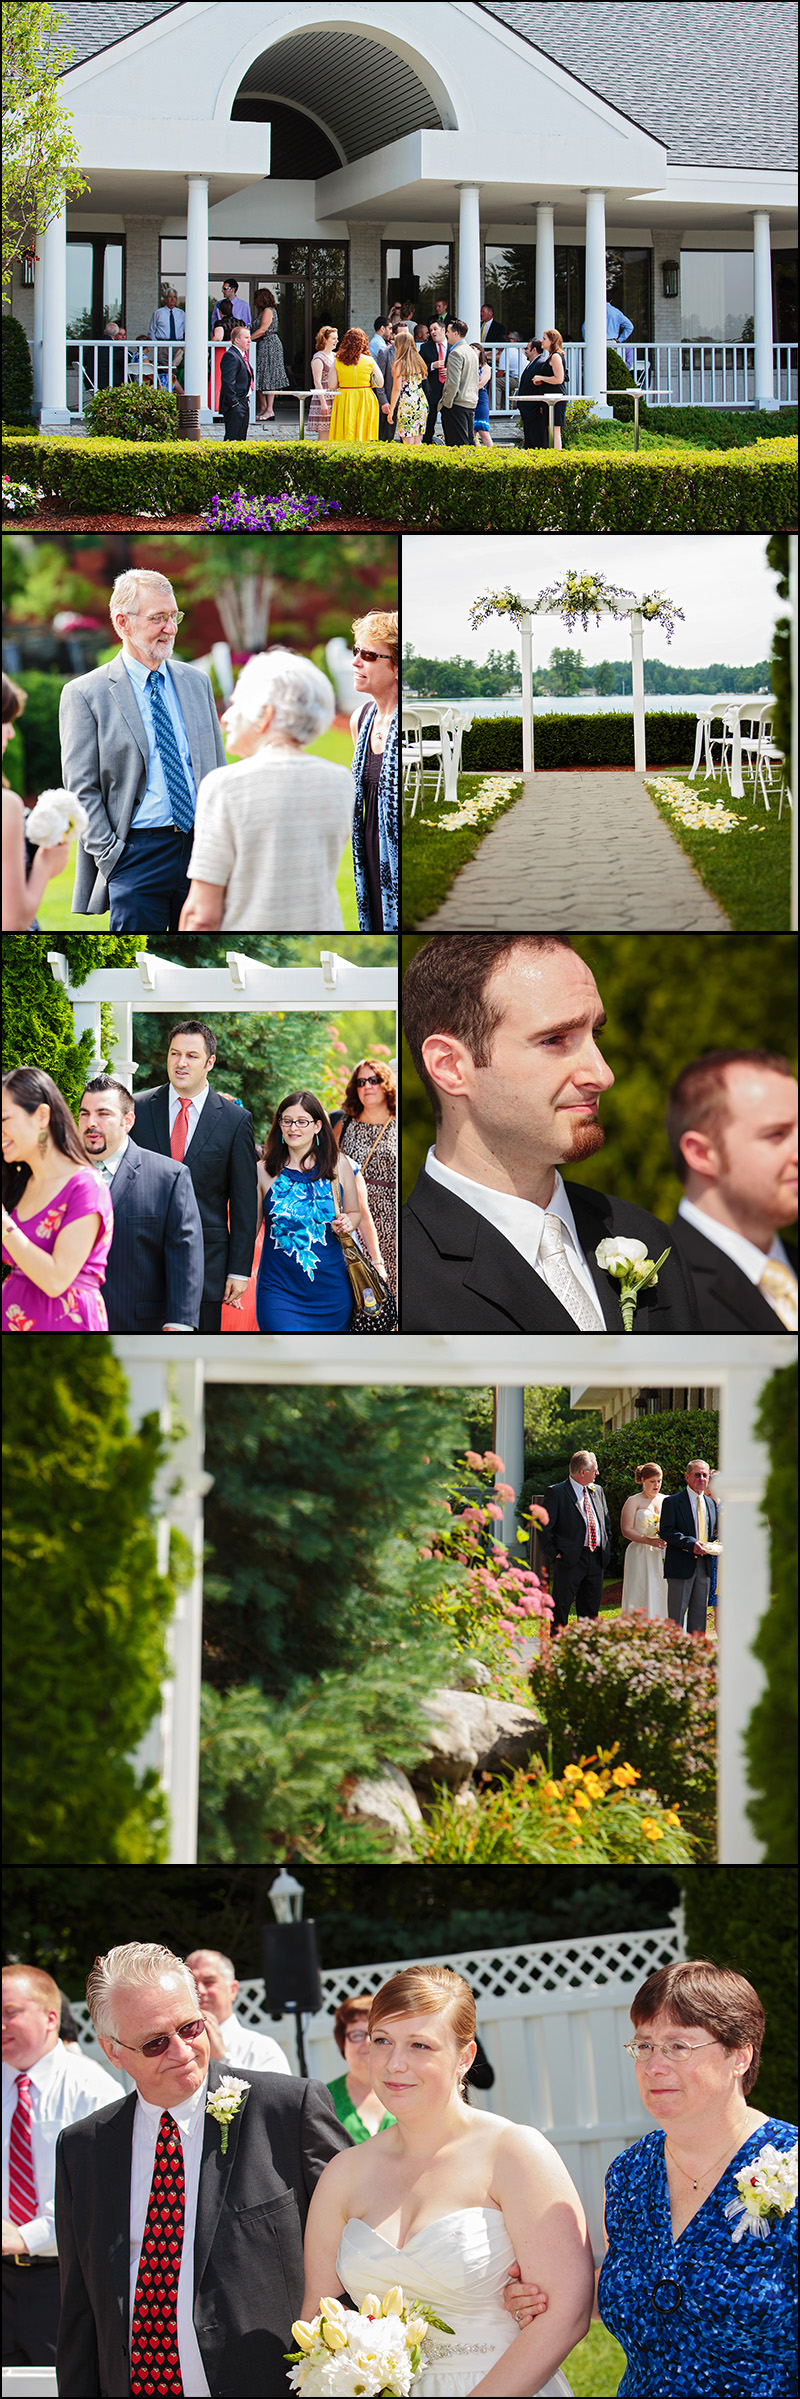 WEDDING CEREMONY PHOTOS AT CASTLETON WINDHAM NH